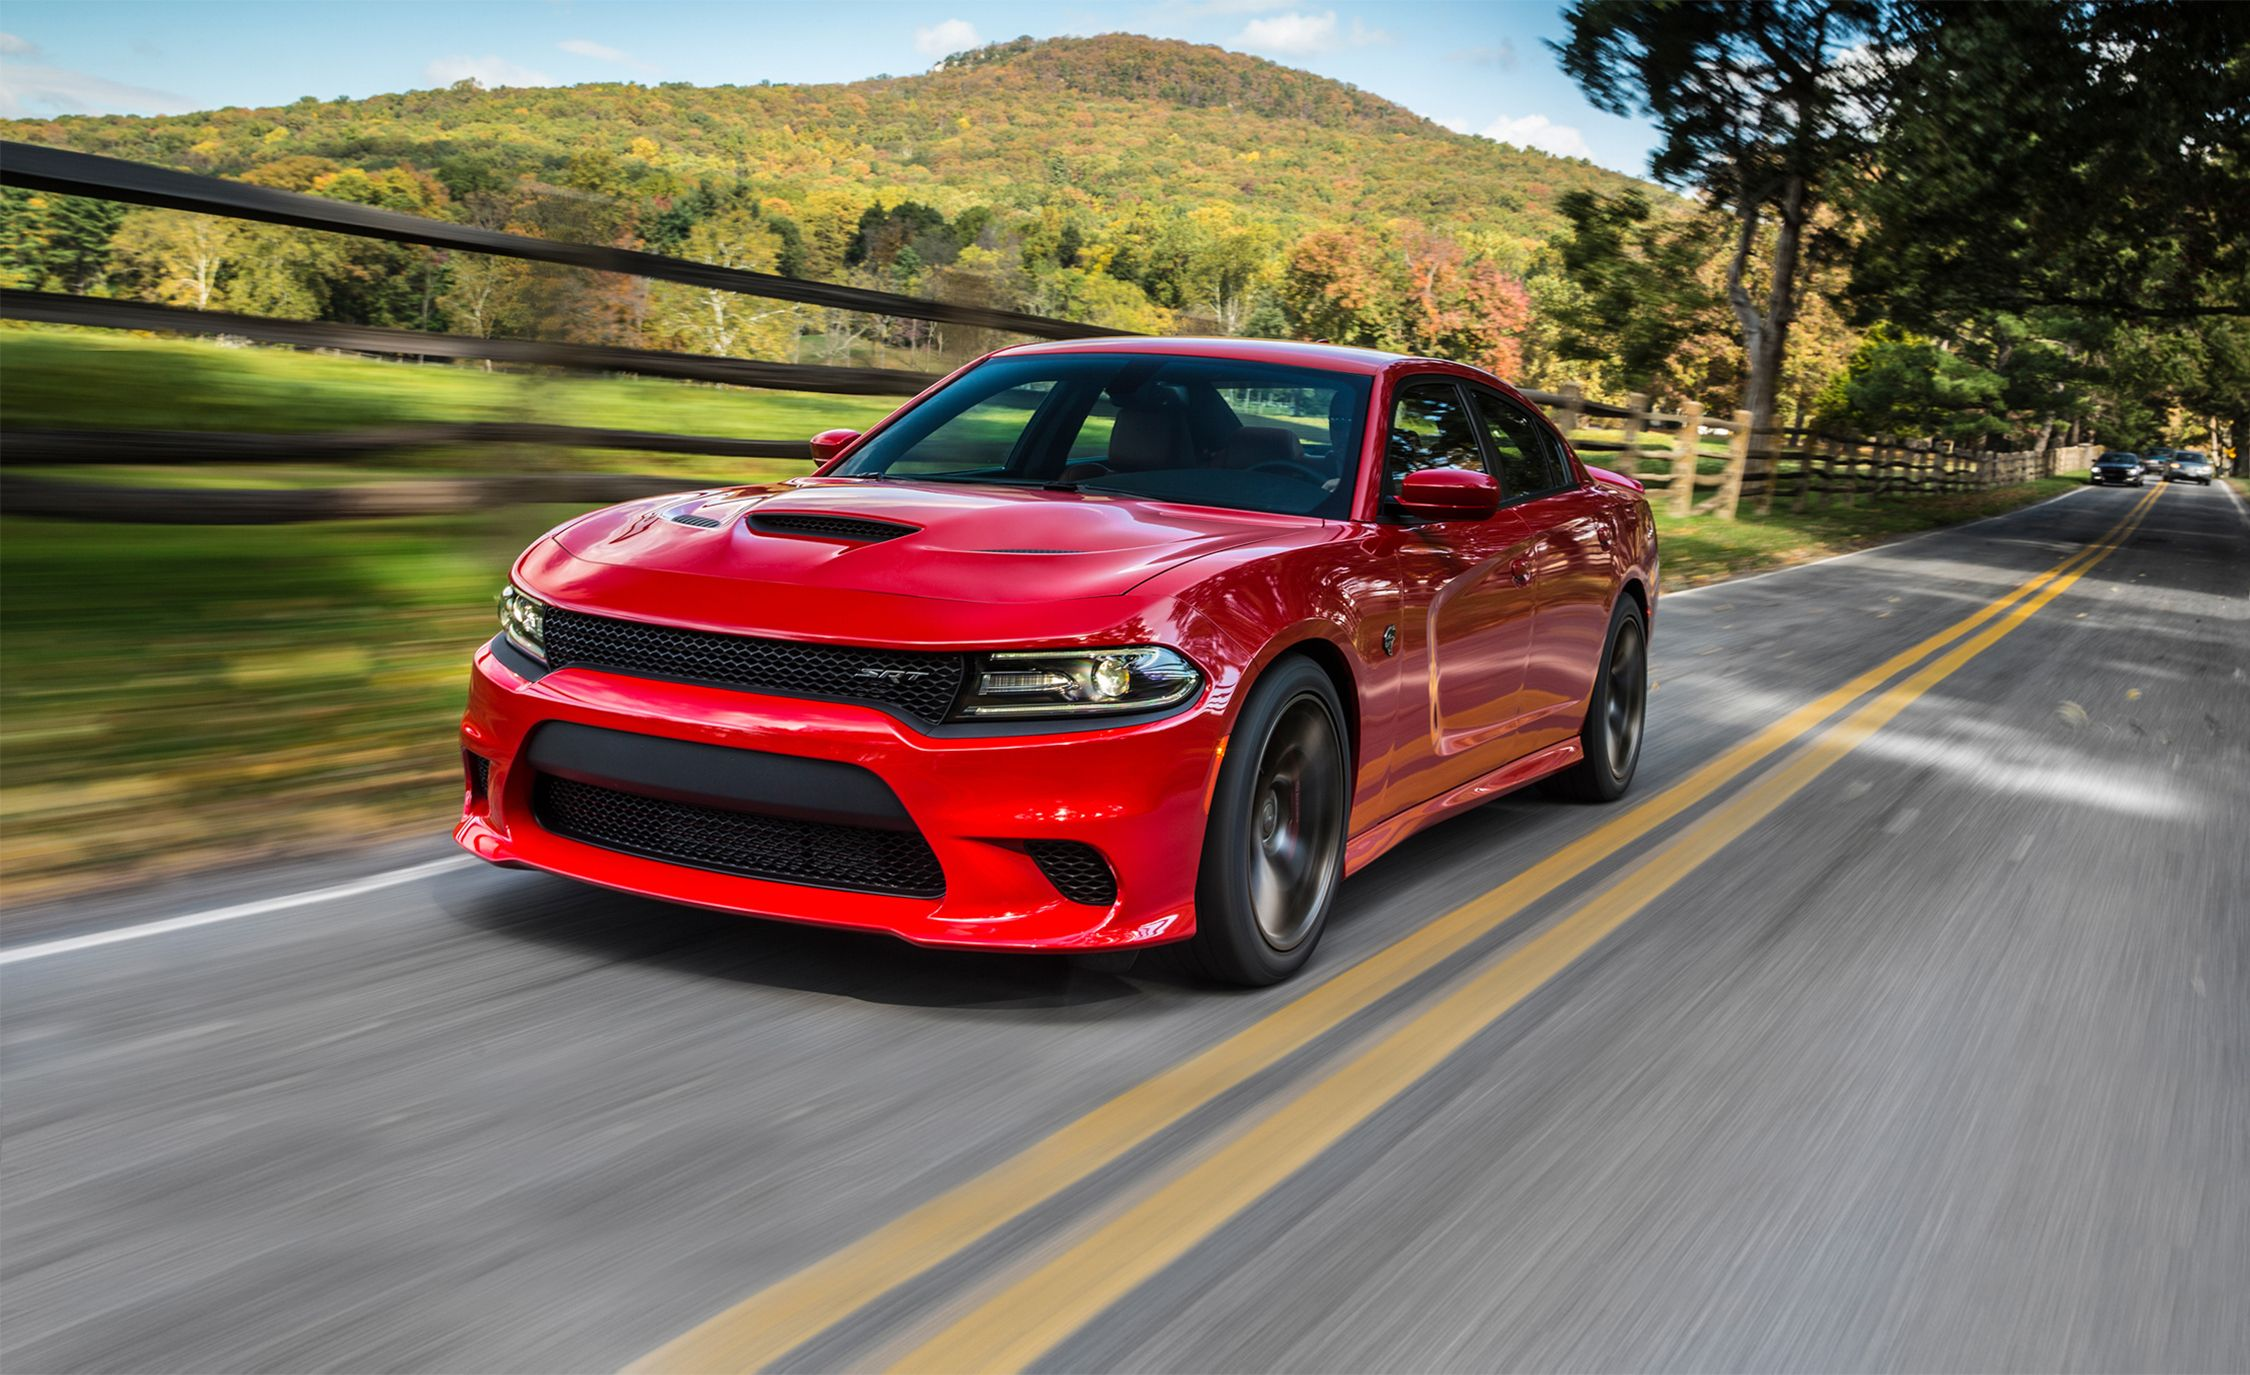 Dodge Charger Srt Hellcat >> 2017 Dodge Charger Srt Hellcat Review Car And Driver